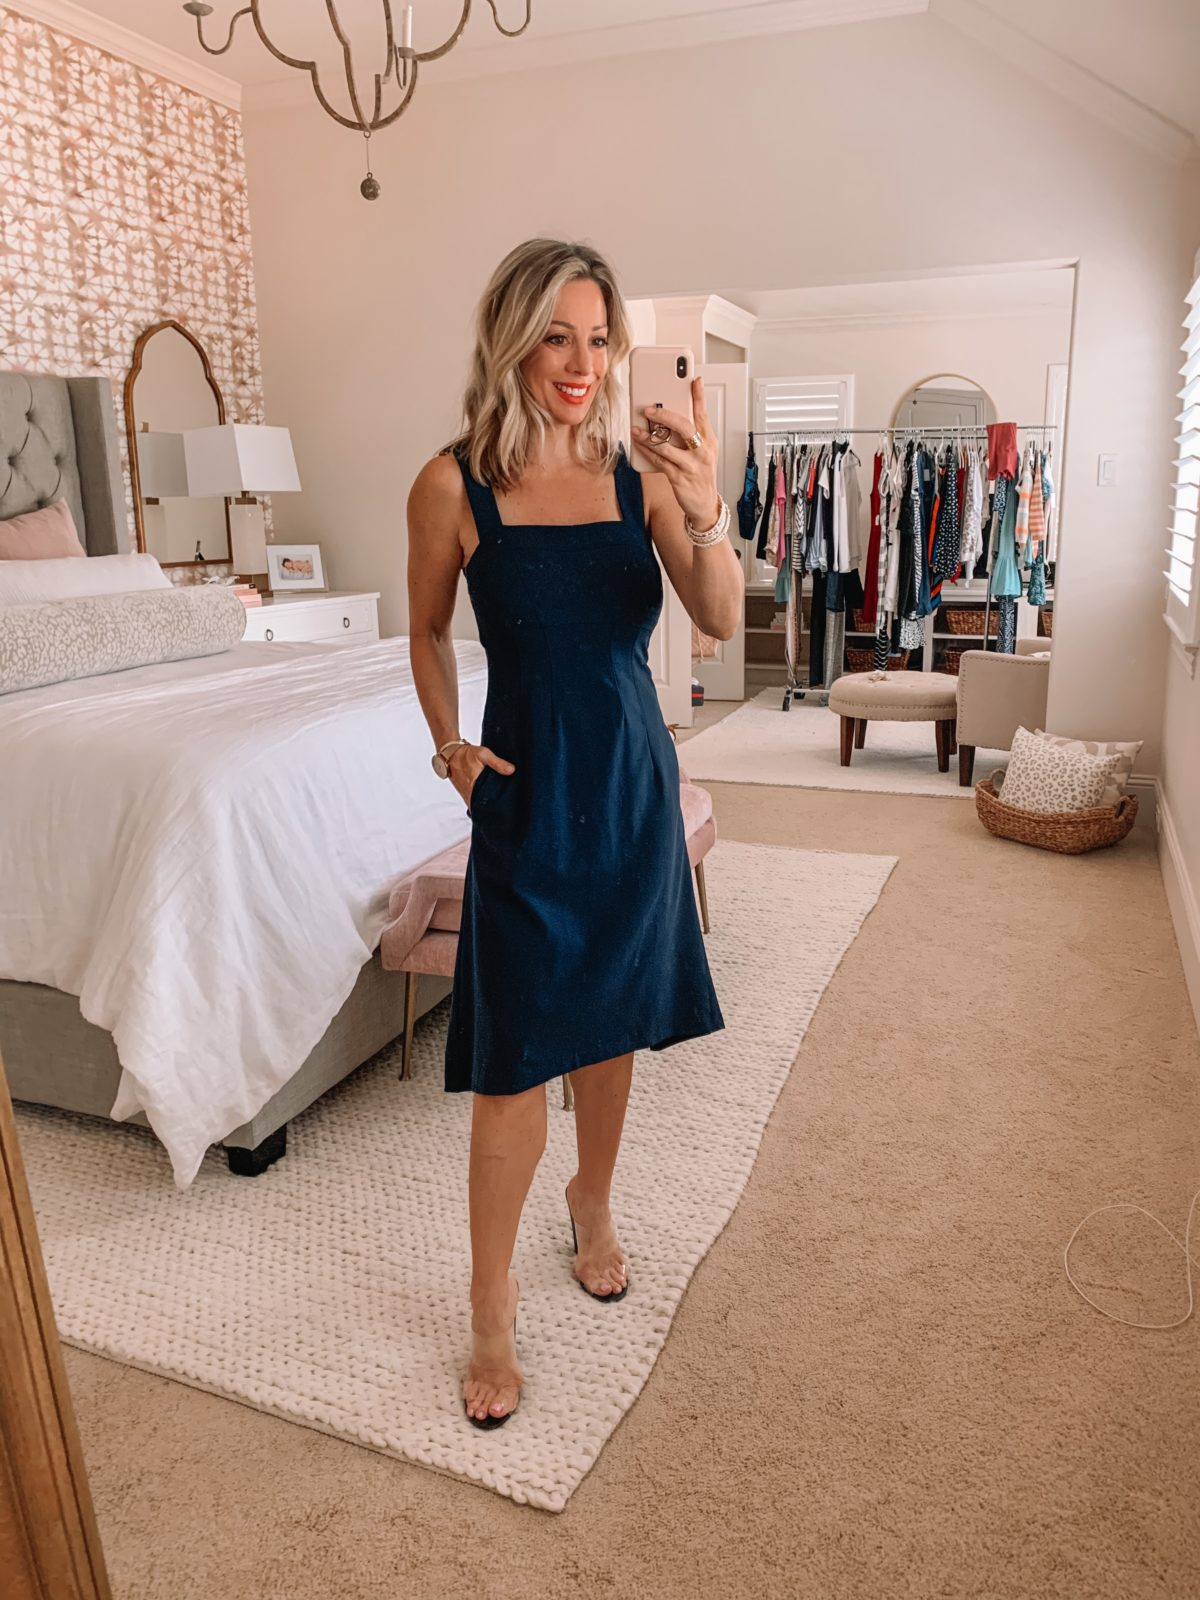 Amazon Fashion Finds, Square Neck Fit and Flare Dress, Clear Heels